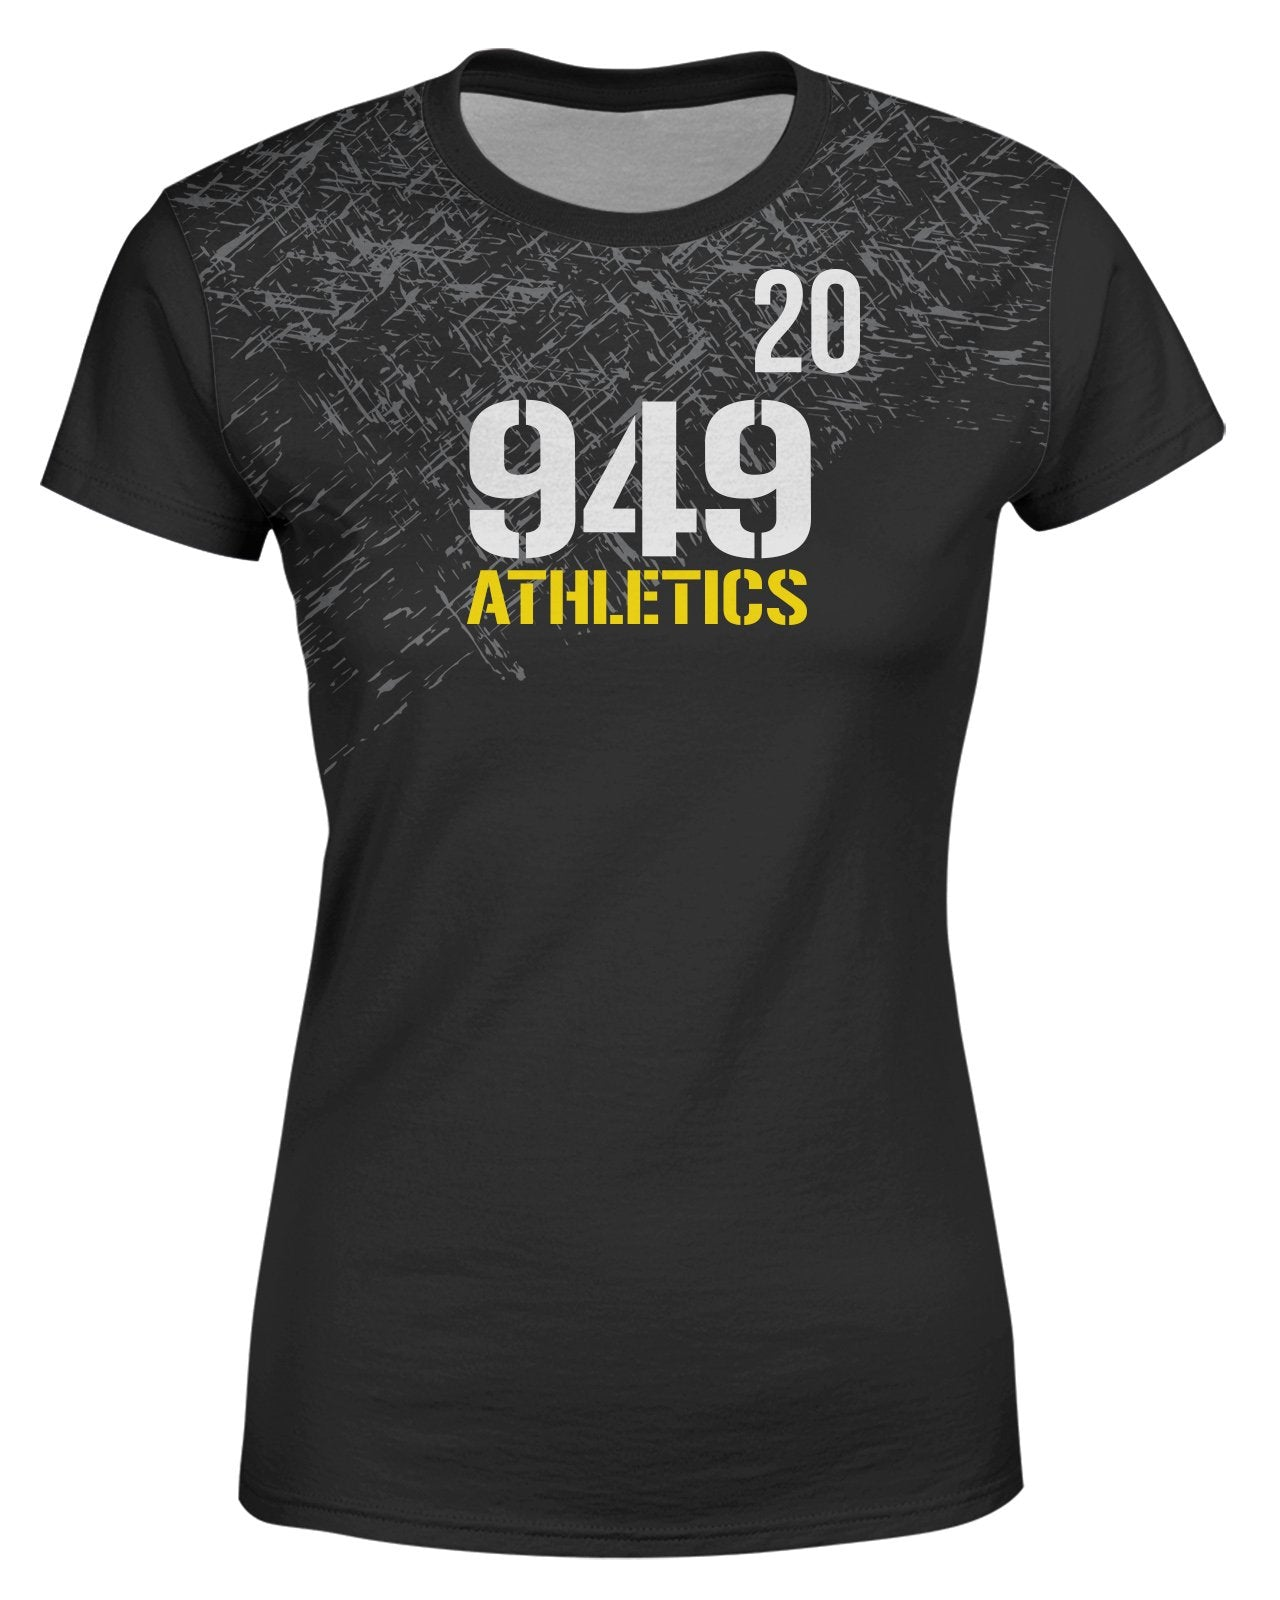 949 Athletics - Ghosted T-Shirt (Short Sleeve) - Women's